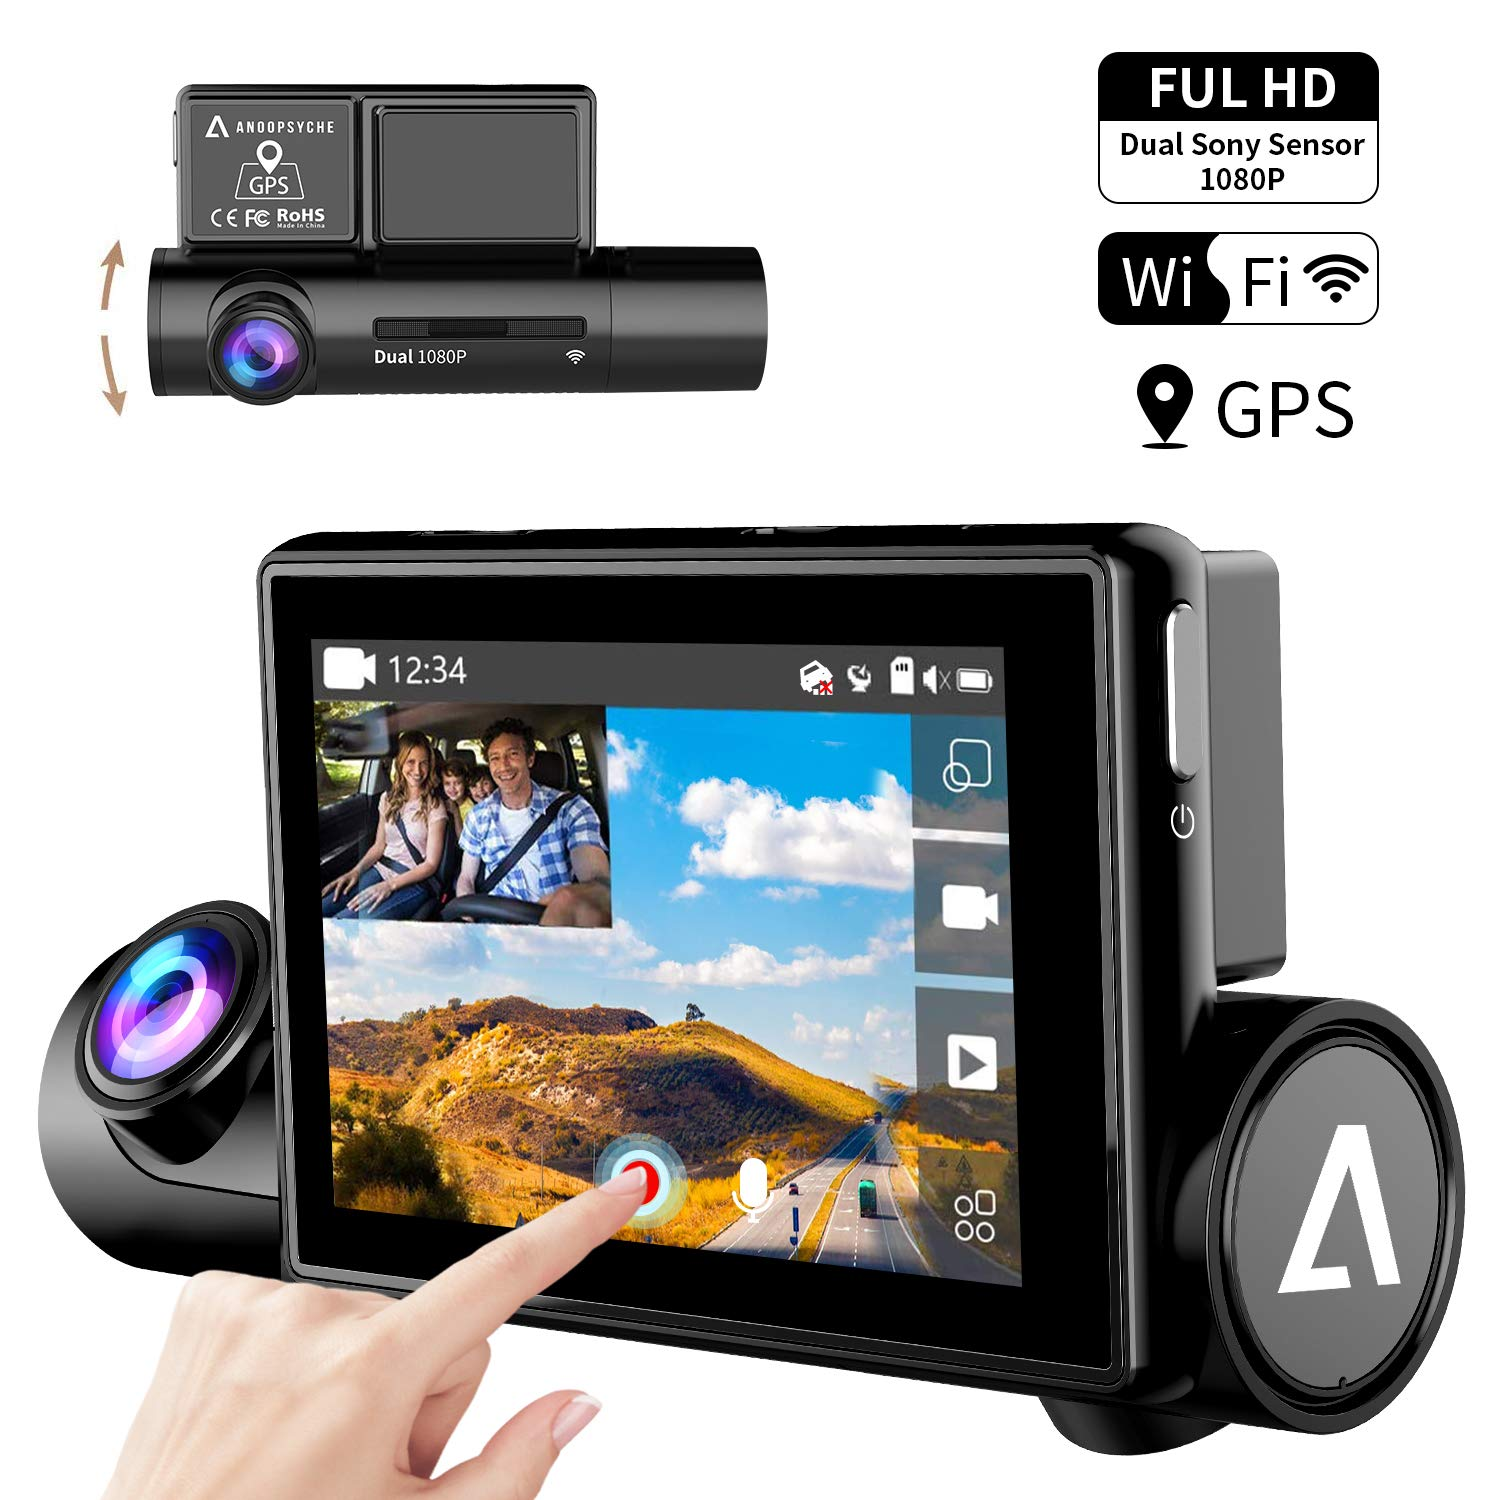 Dash Cam 3.0'' OLED Touch Screen Dual 1080P FHD Front and Inside Dash Camera for Cars-Wifi GPS Car Driving Recorder with Sony Night Vision Sensor 170° Wide Angle WDR G-Sensor Parking Monitor Anoopsyche by Anoopsyche